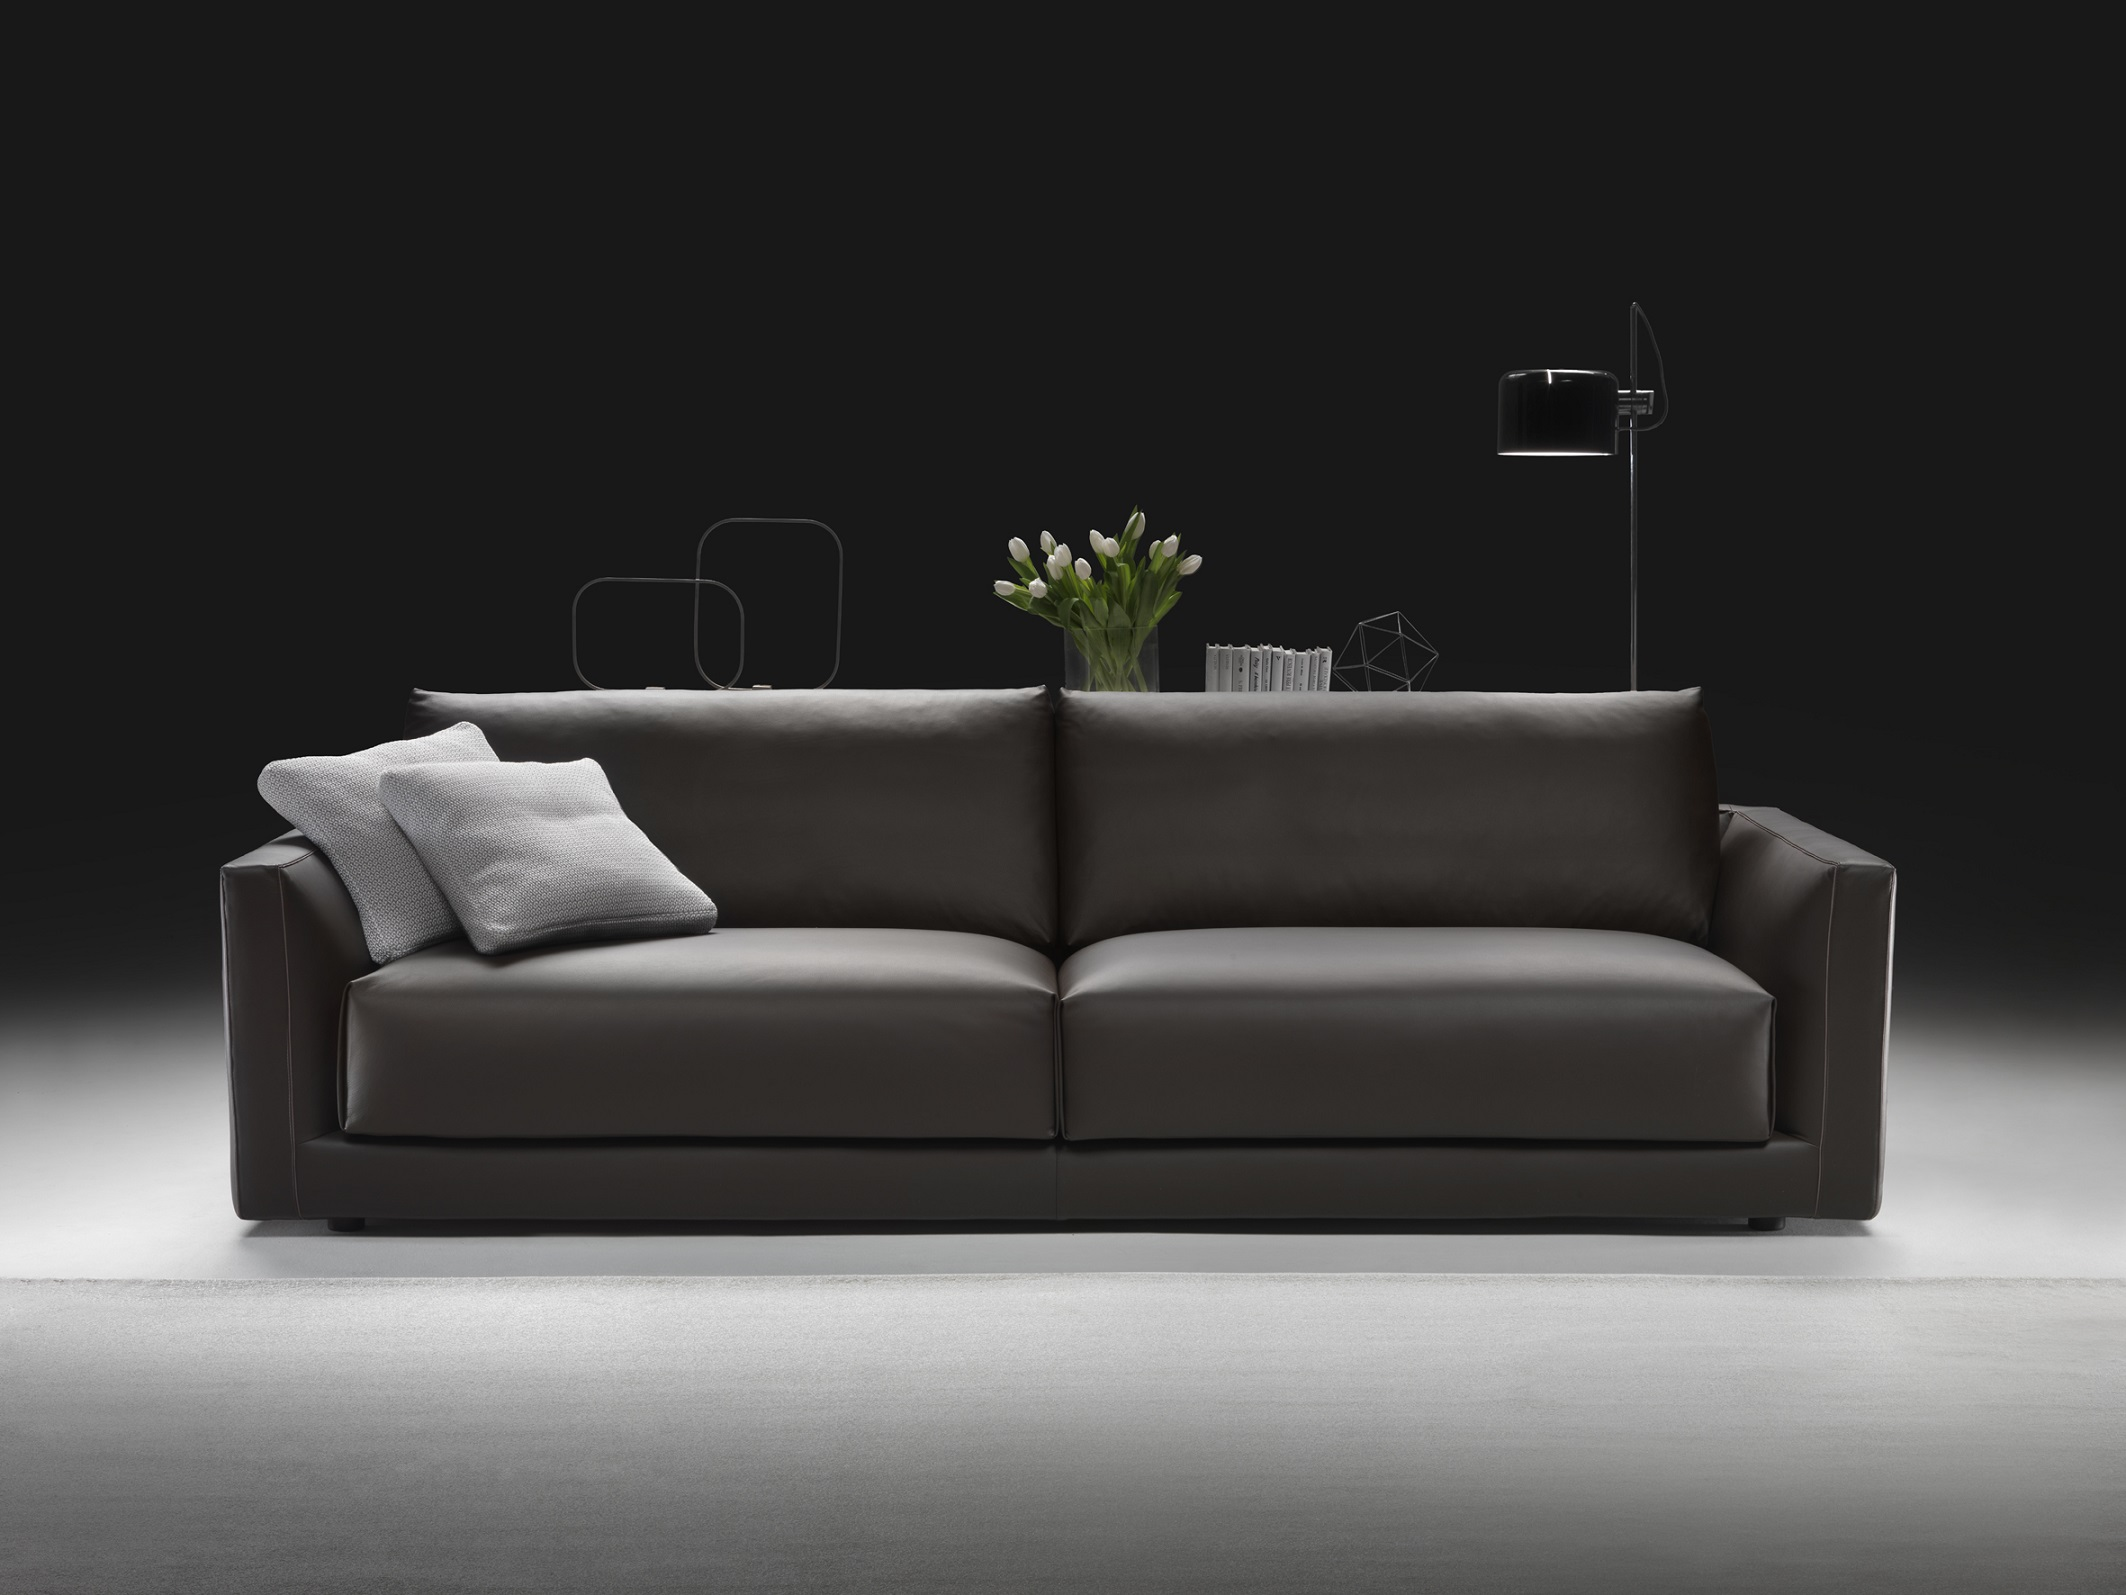 leather sofa soma made in italy newformsdesign outlet sofas newformsdesign. Black Bedroom Furniture Sets. Home Design Ideas